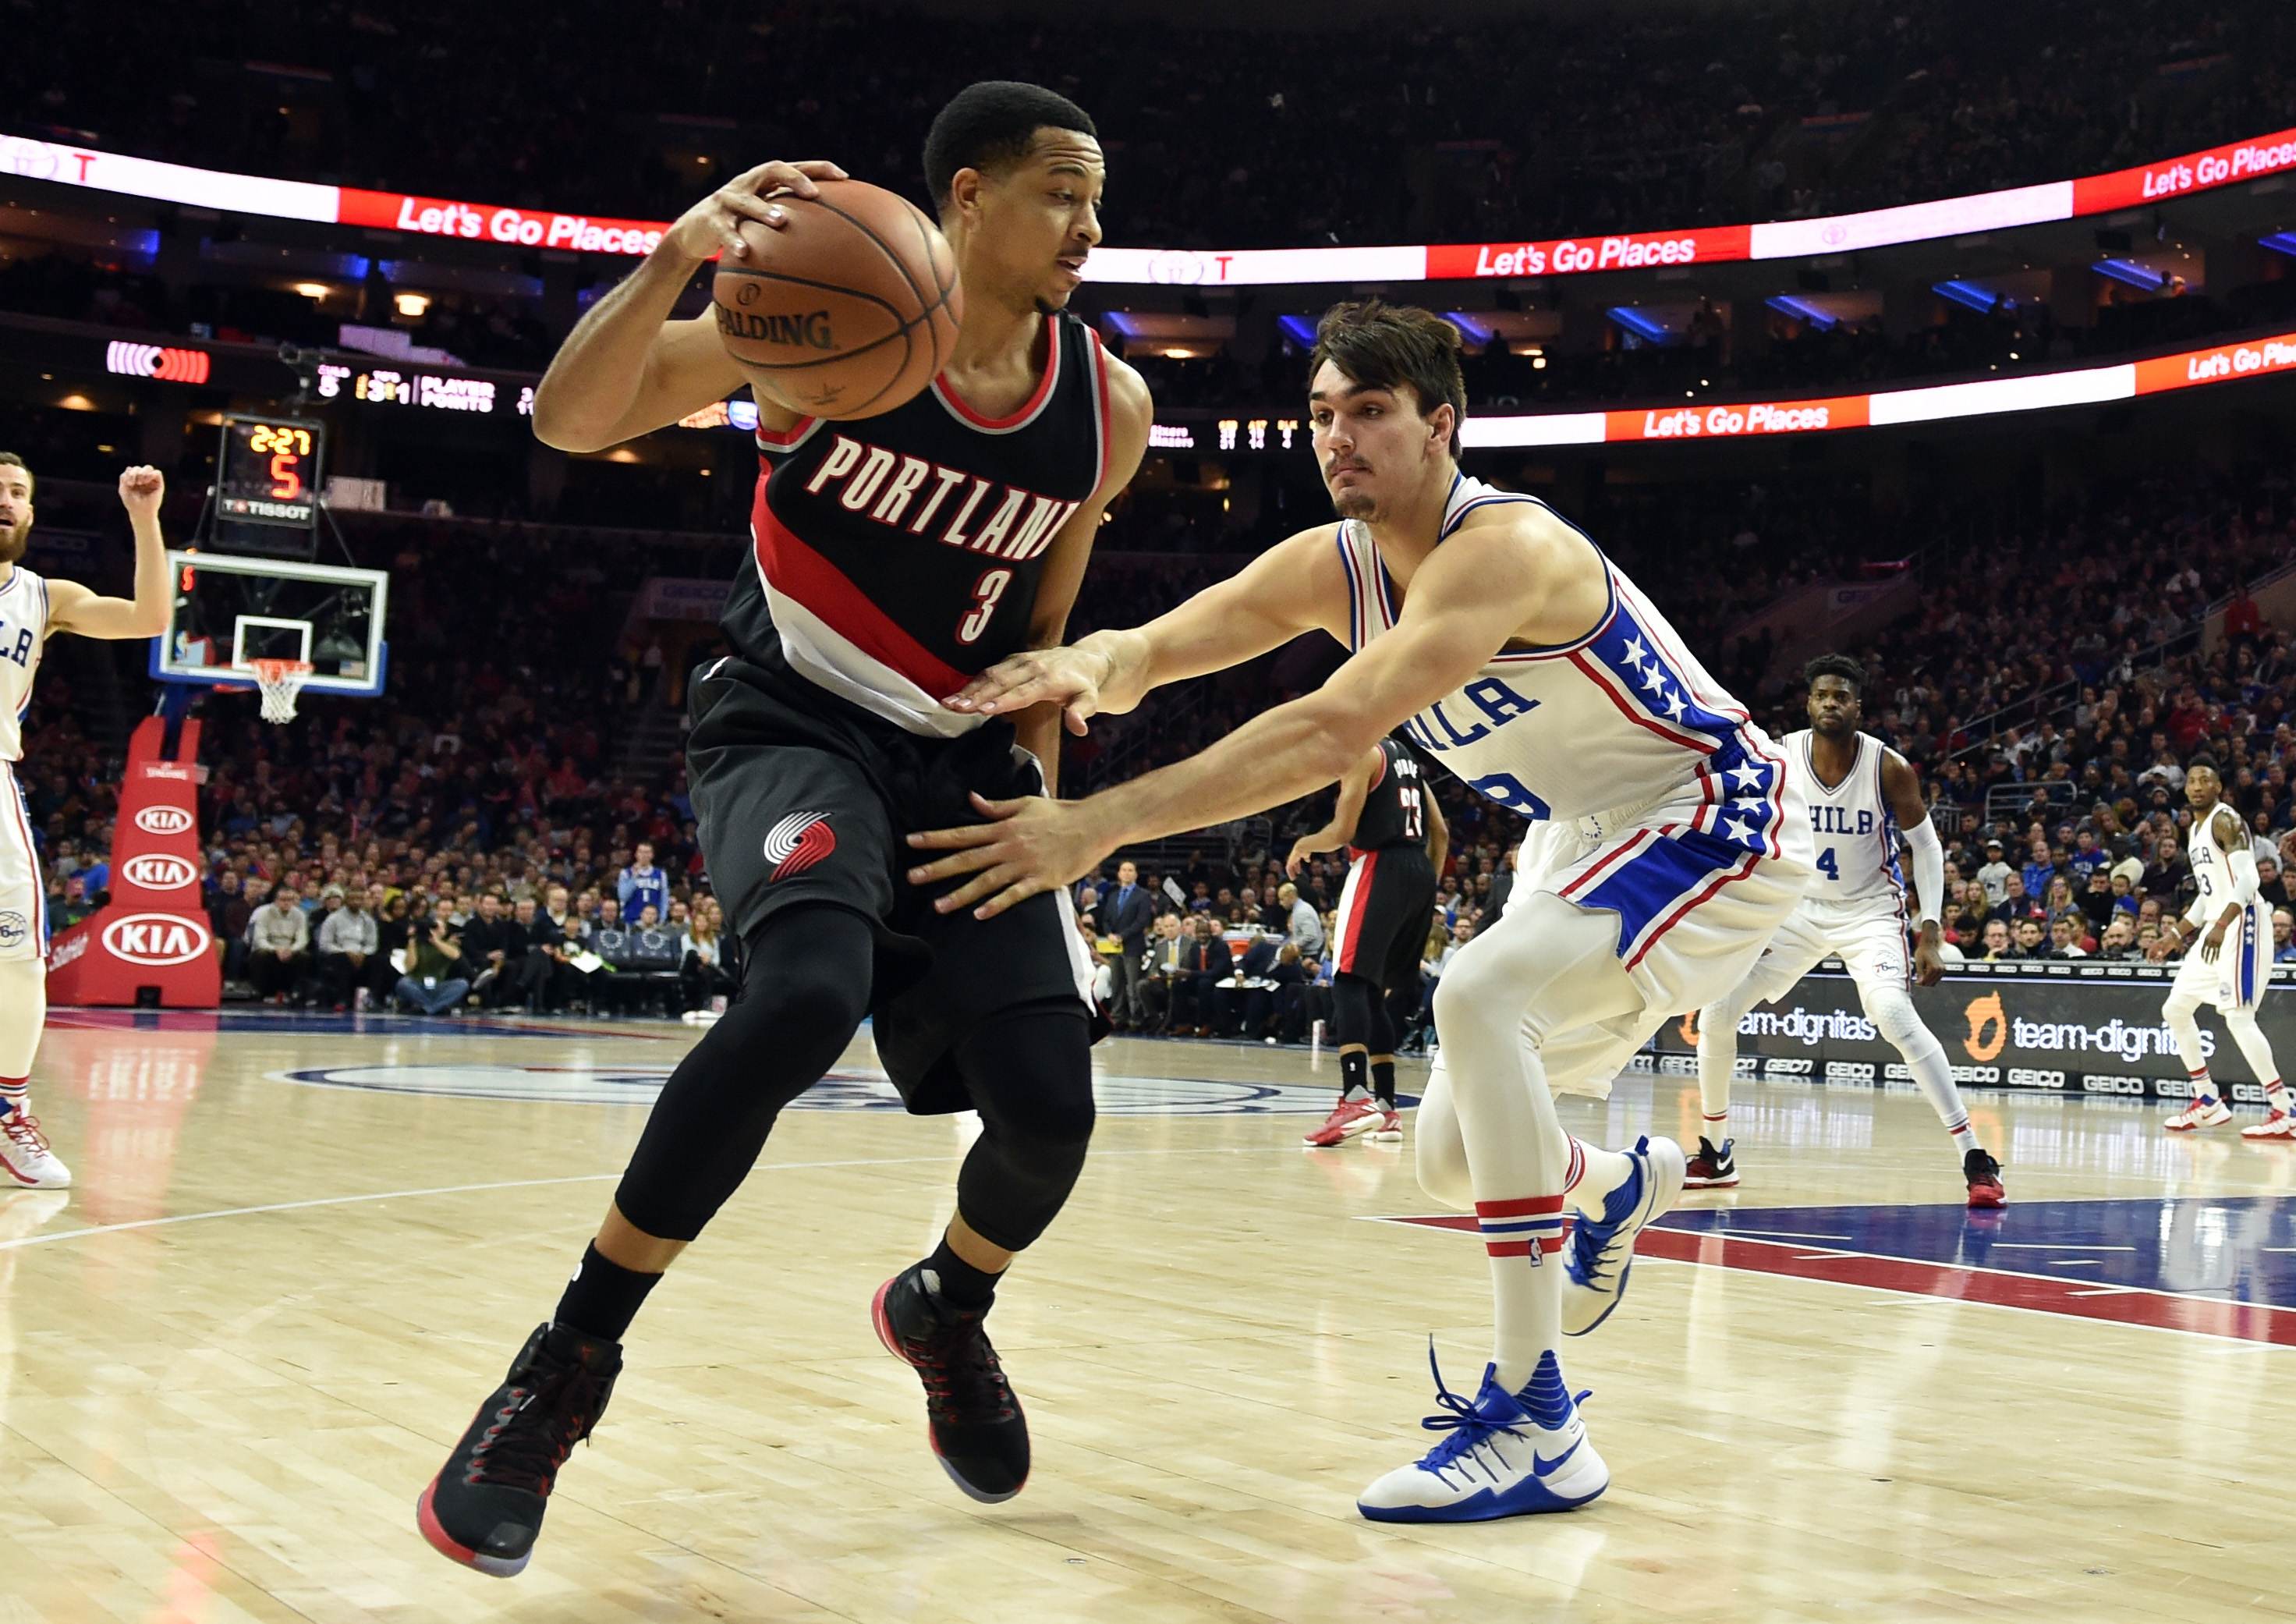 9826517-nba-portland-trail-blazers-at-philadelphia-76ers